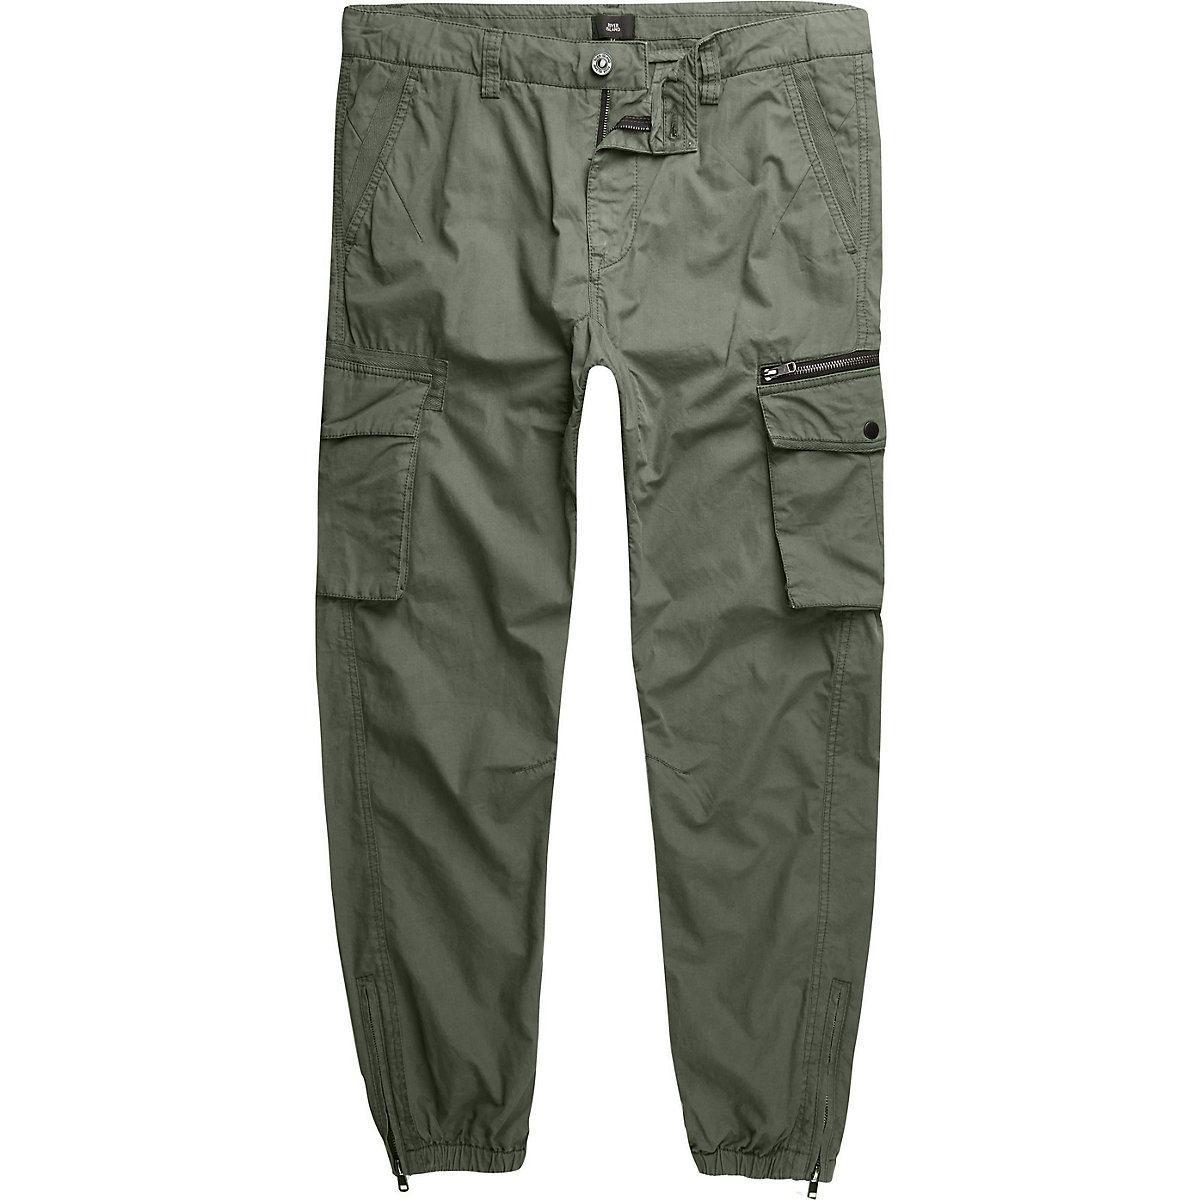 Big and Tall khaki green cargo trousers